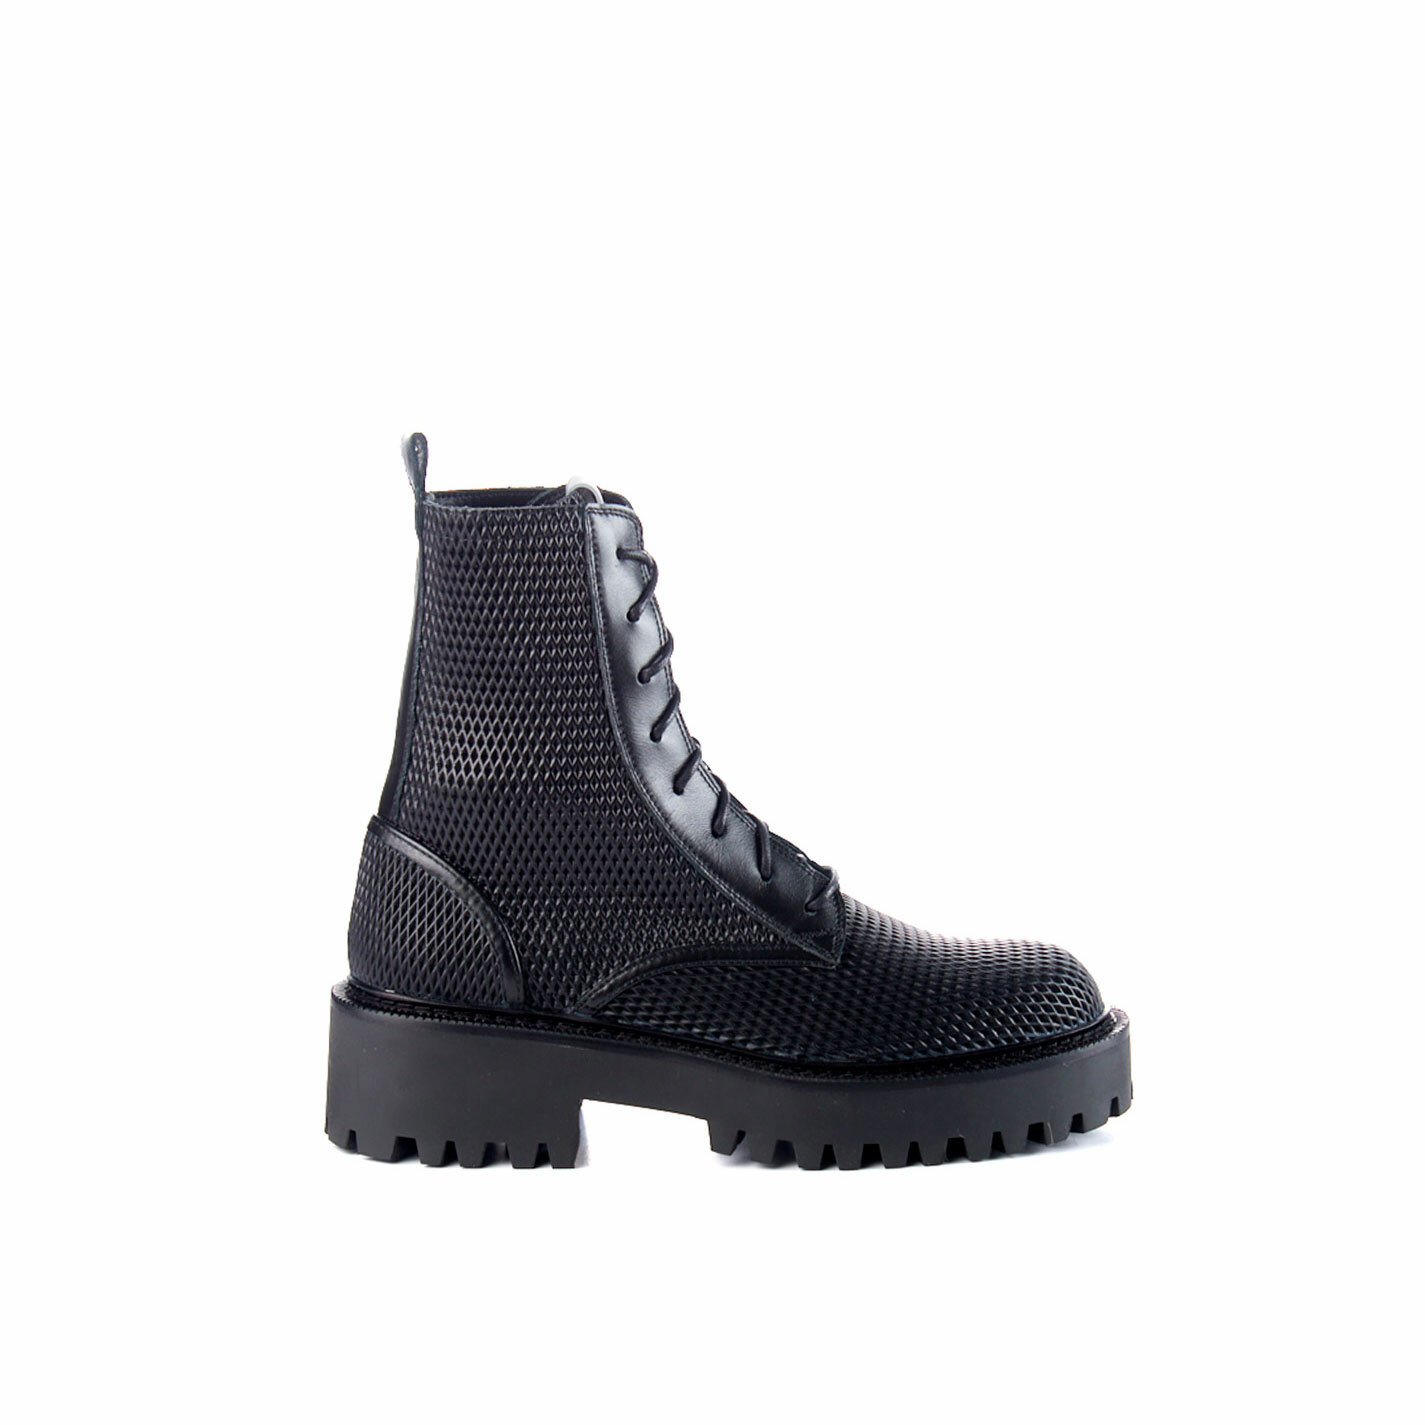 Black combat boots in perforated calfskin